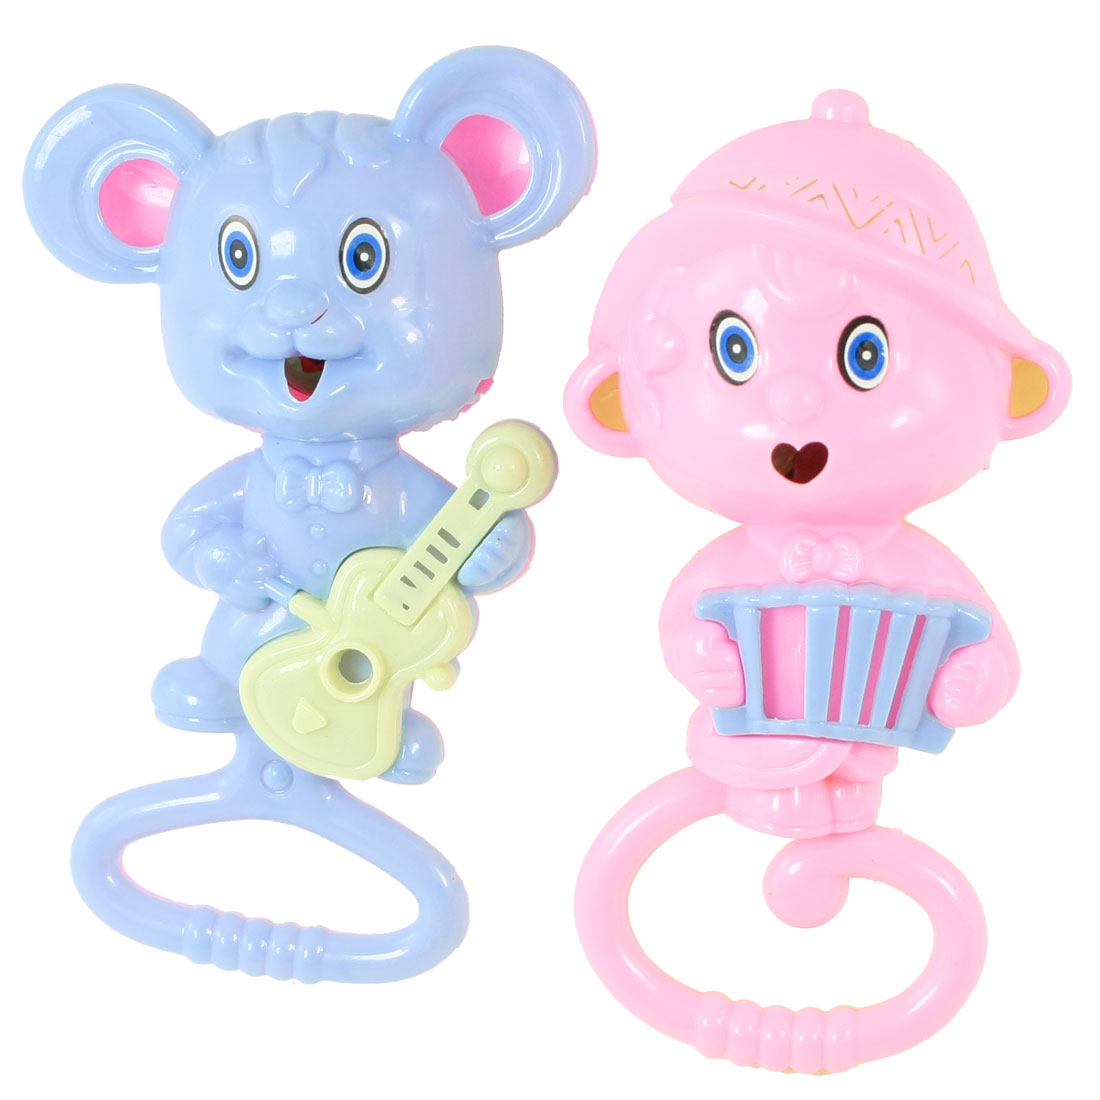 2 Pcs Pink Blue Plastic Cartoon Mice Playing Guitar Accordion Rattling Toy